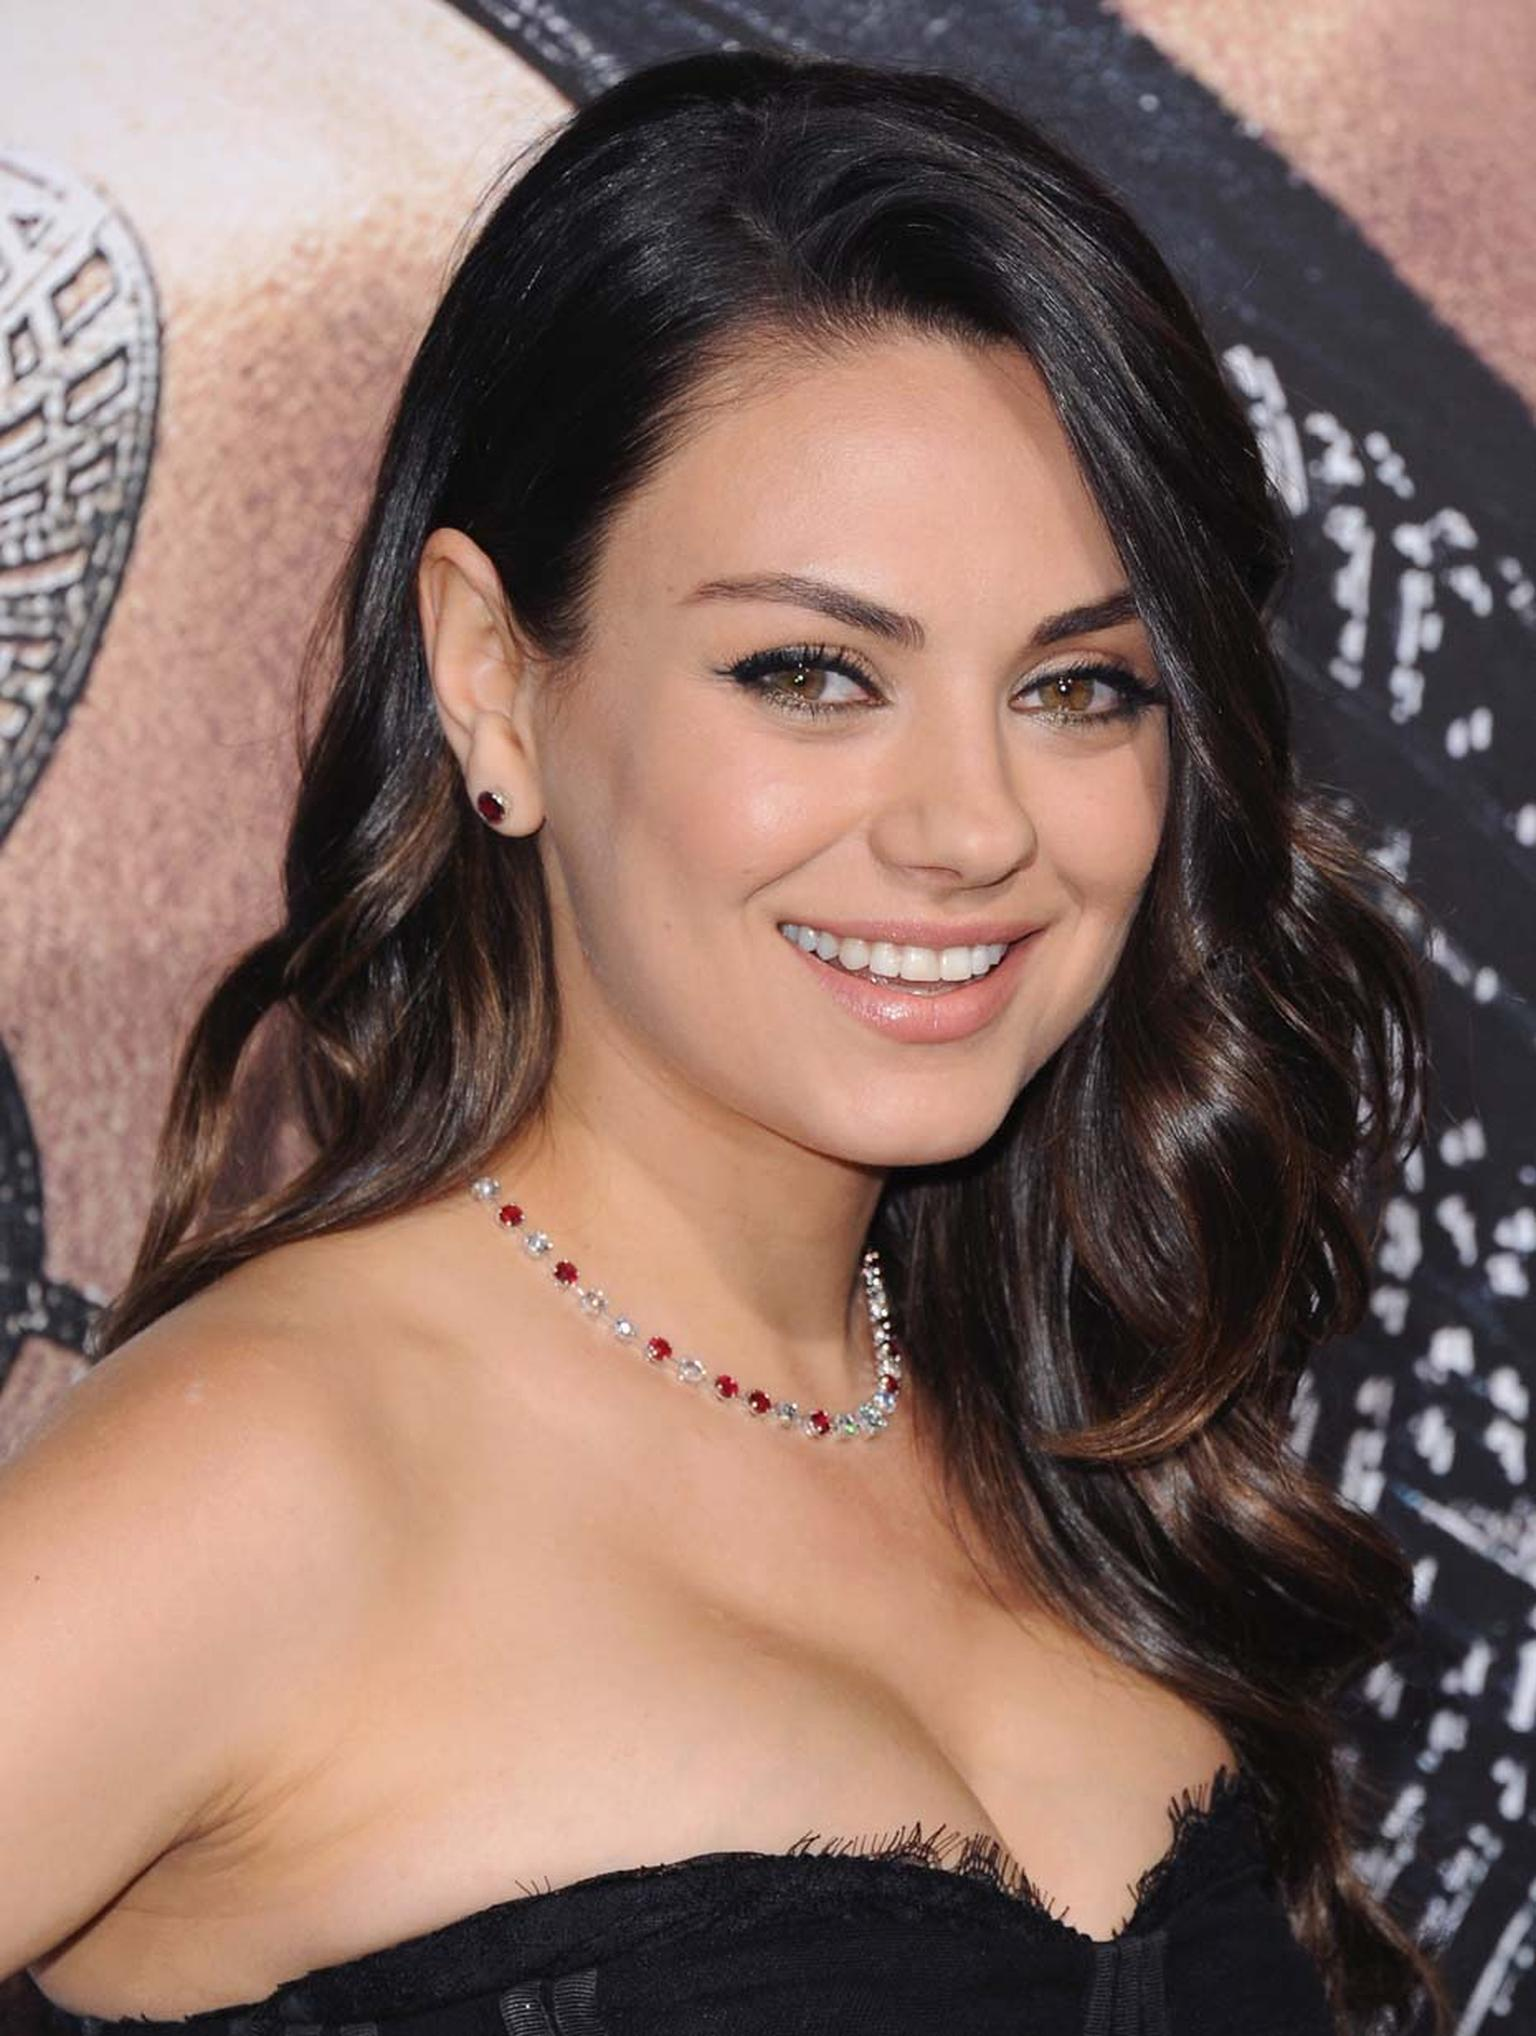 Actress Mila Kunis wore a Miiori necklace set with Gemfields rubies to the premiere of her 2015 movie, Jupiter Ascending.